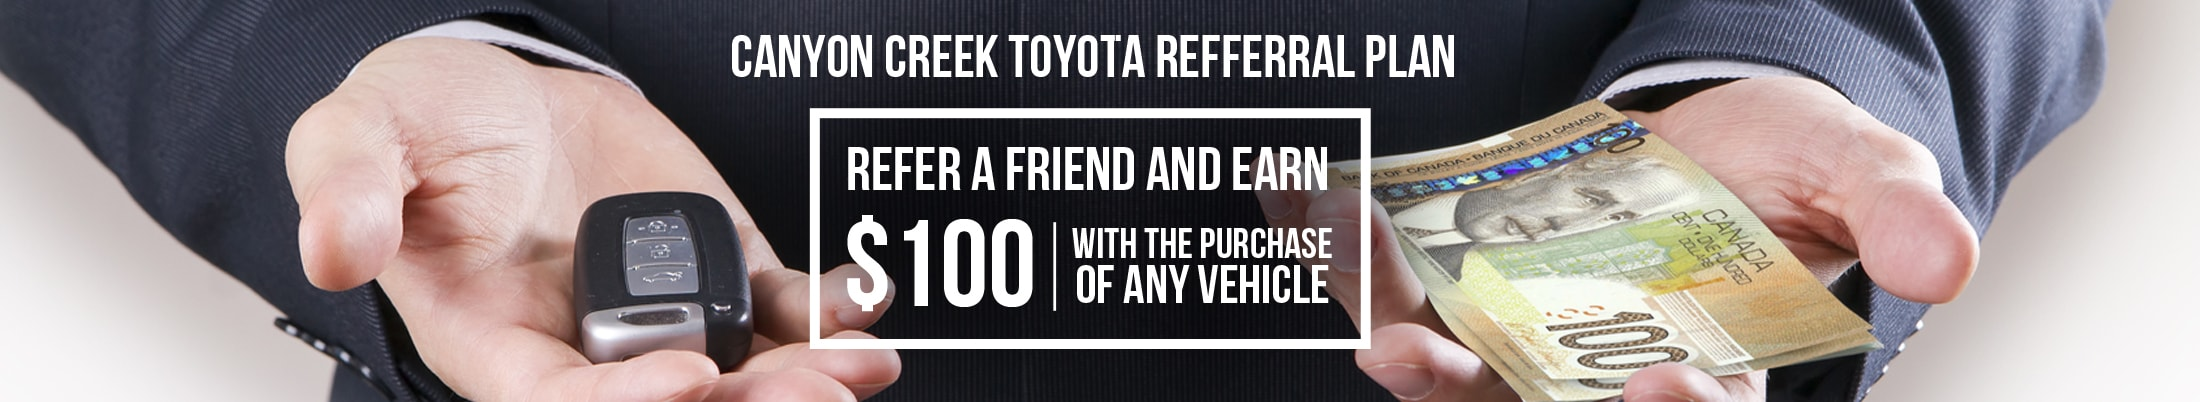 Canyon Creek Toyota Referral Program